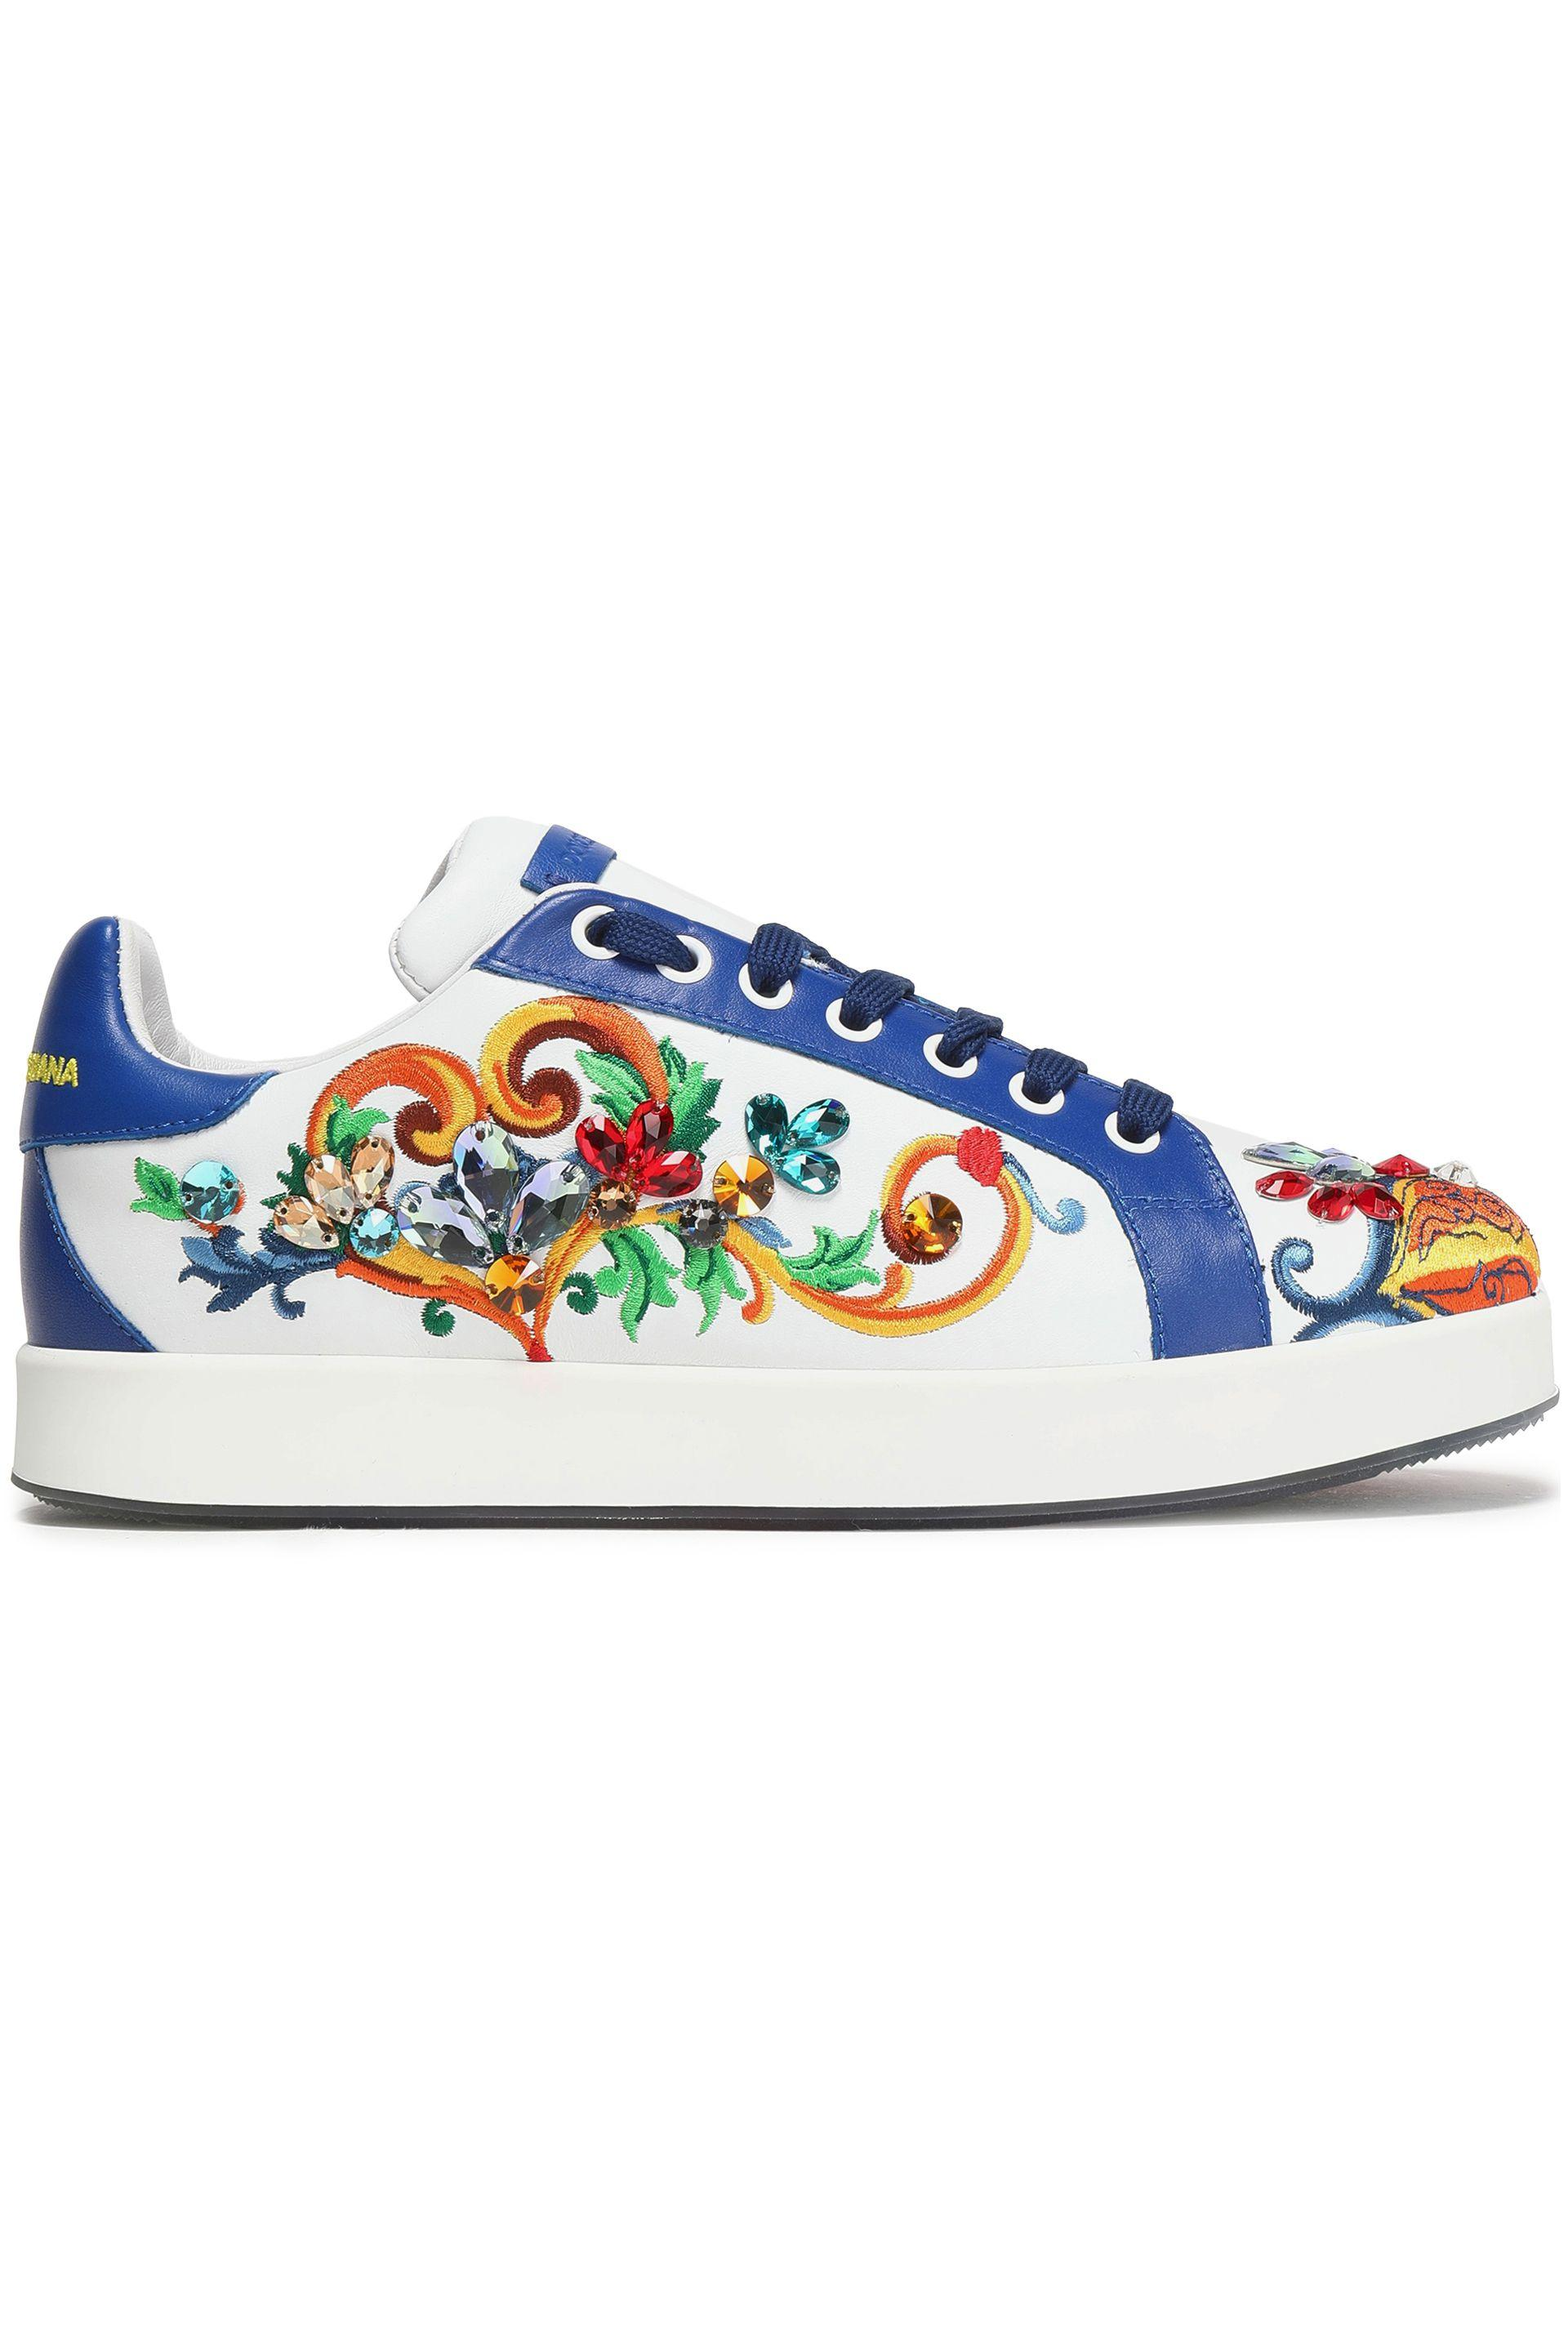 30d9d6b6cc Dolce & Gabbana. Women's White Woman Portofino Crystal-embellished  Embroidered Leather Sneakers Blue